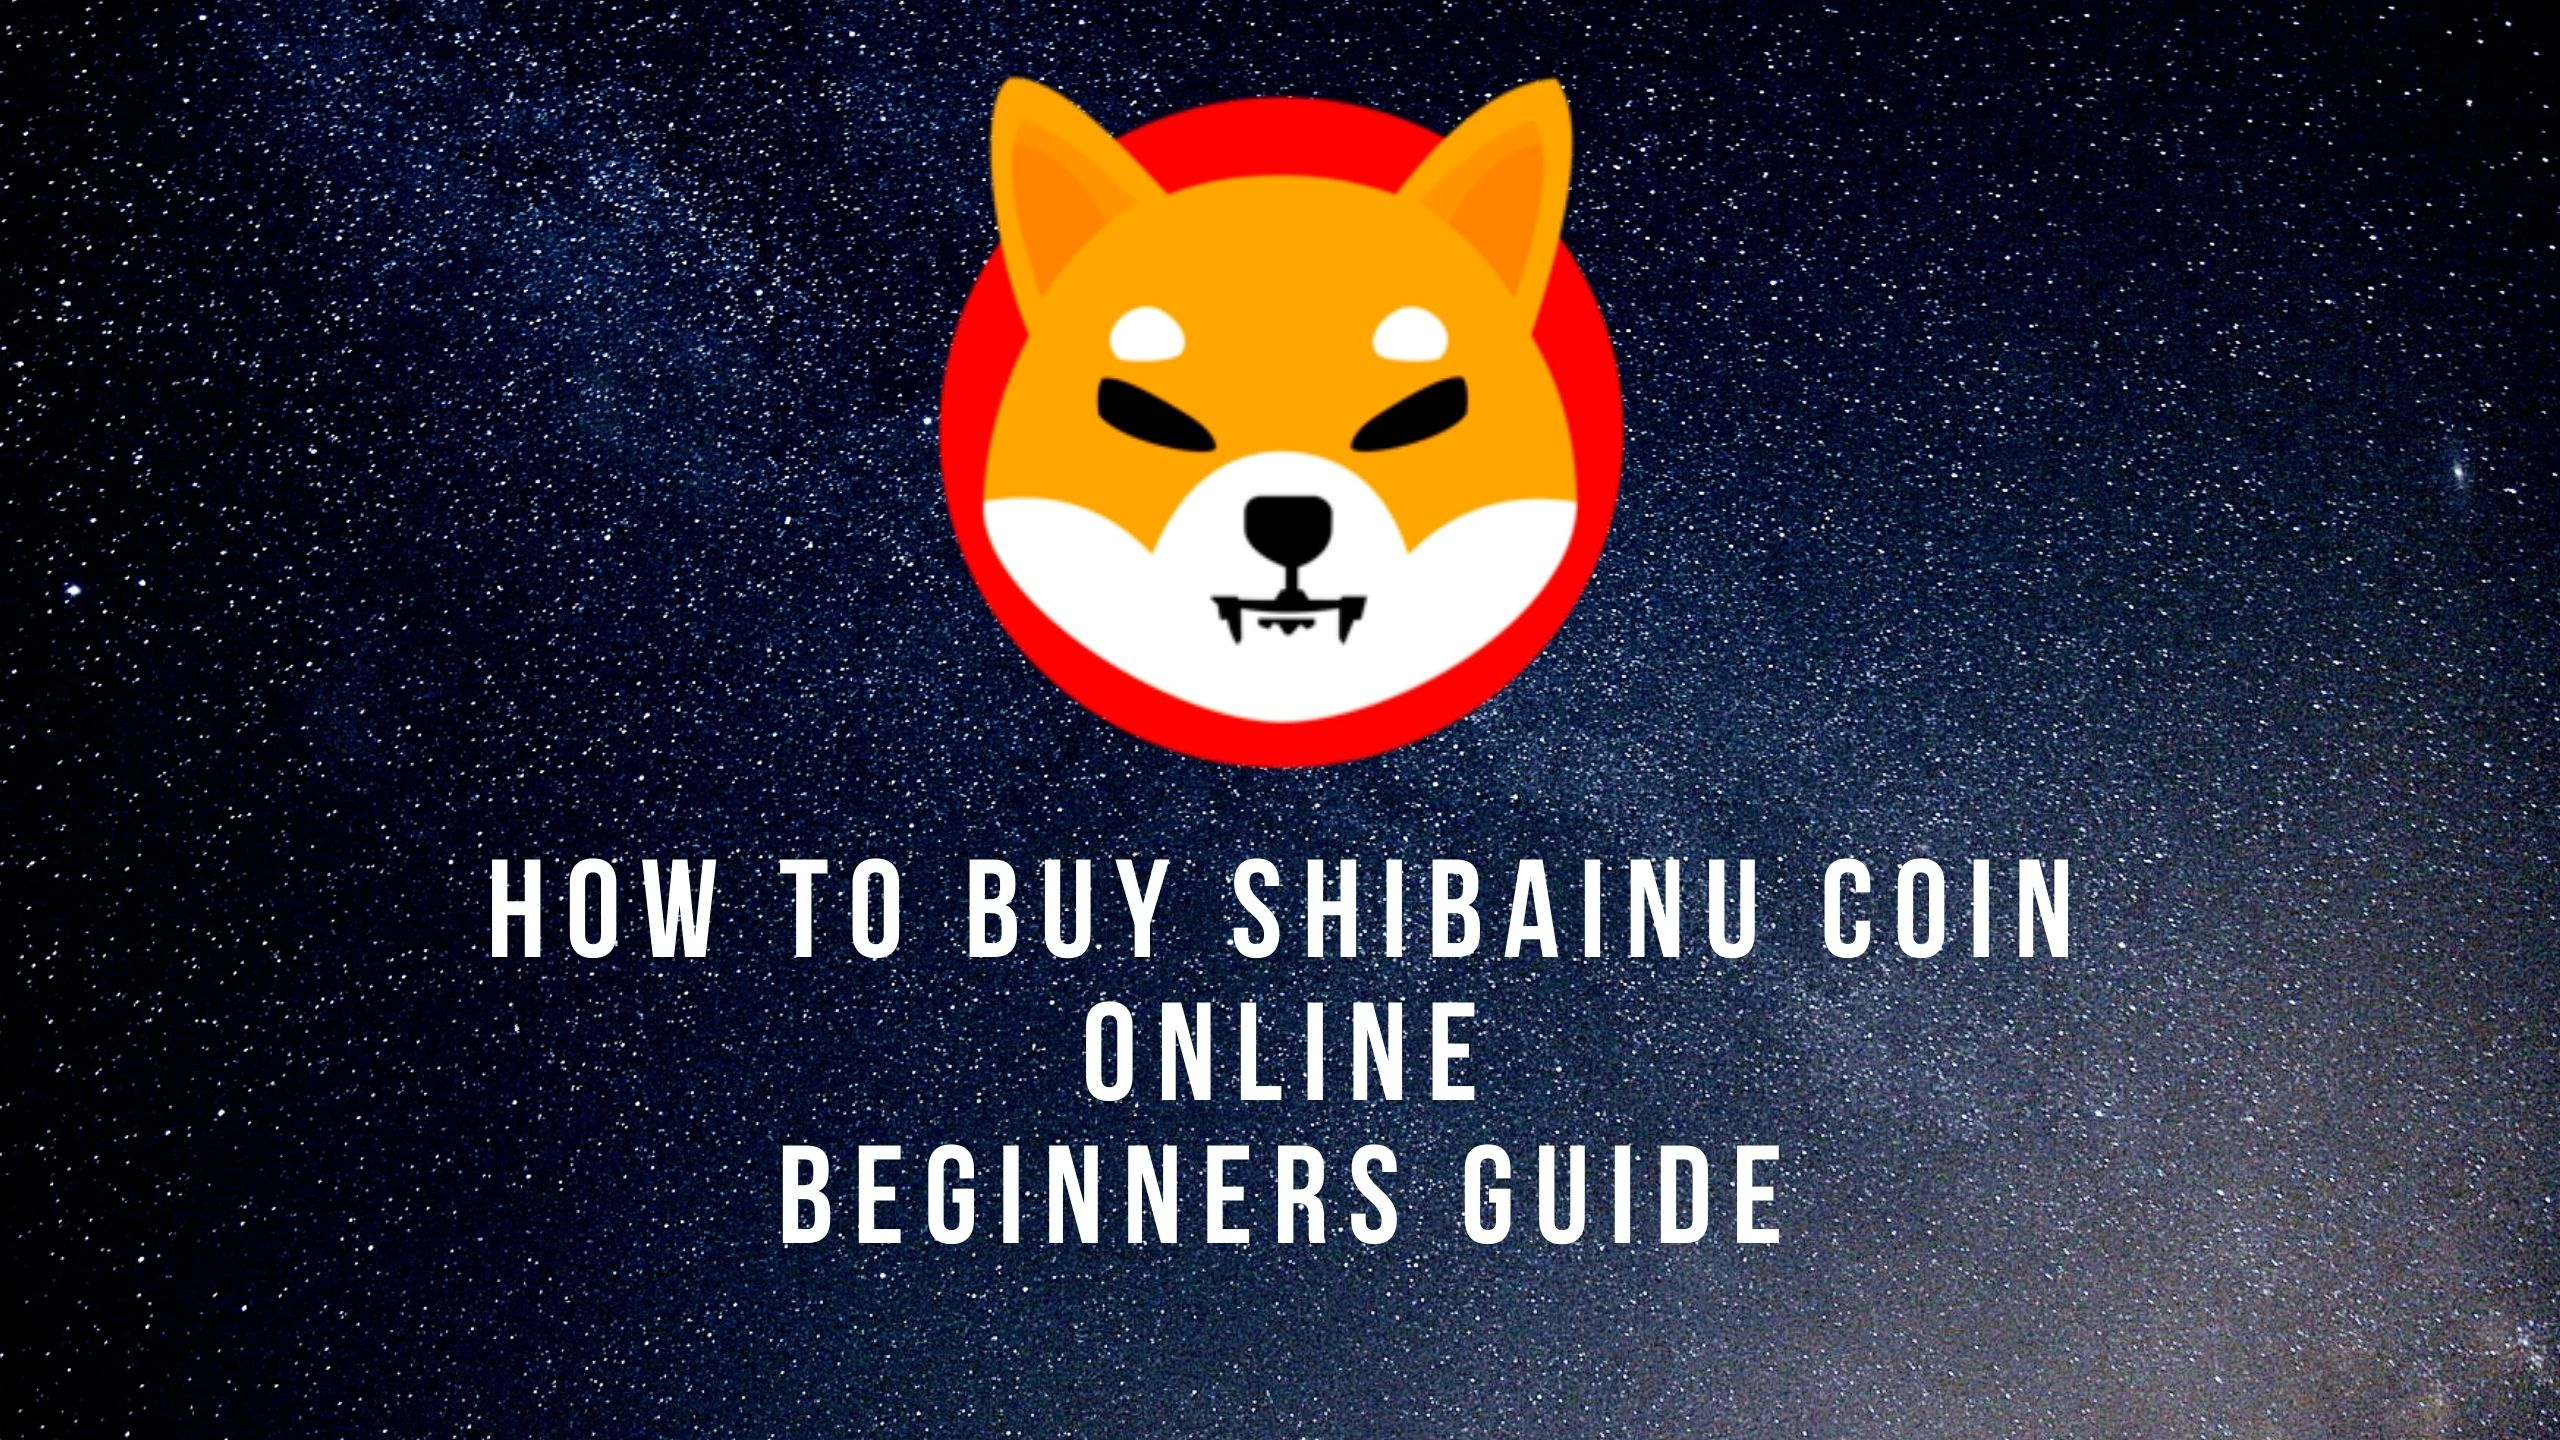 How to Buy ShibaInu Coin Online - Beginners Guide